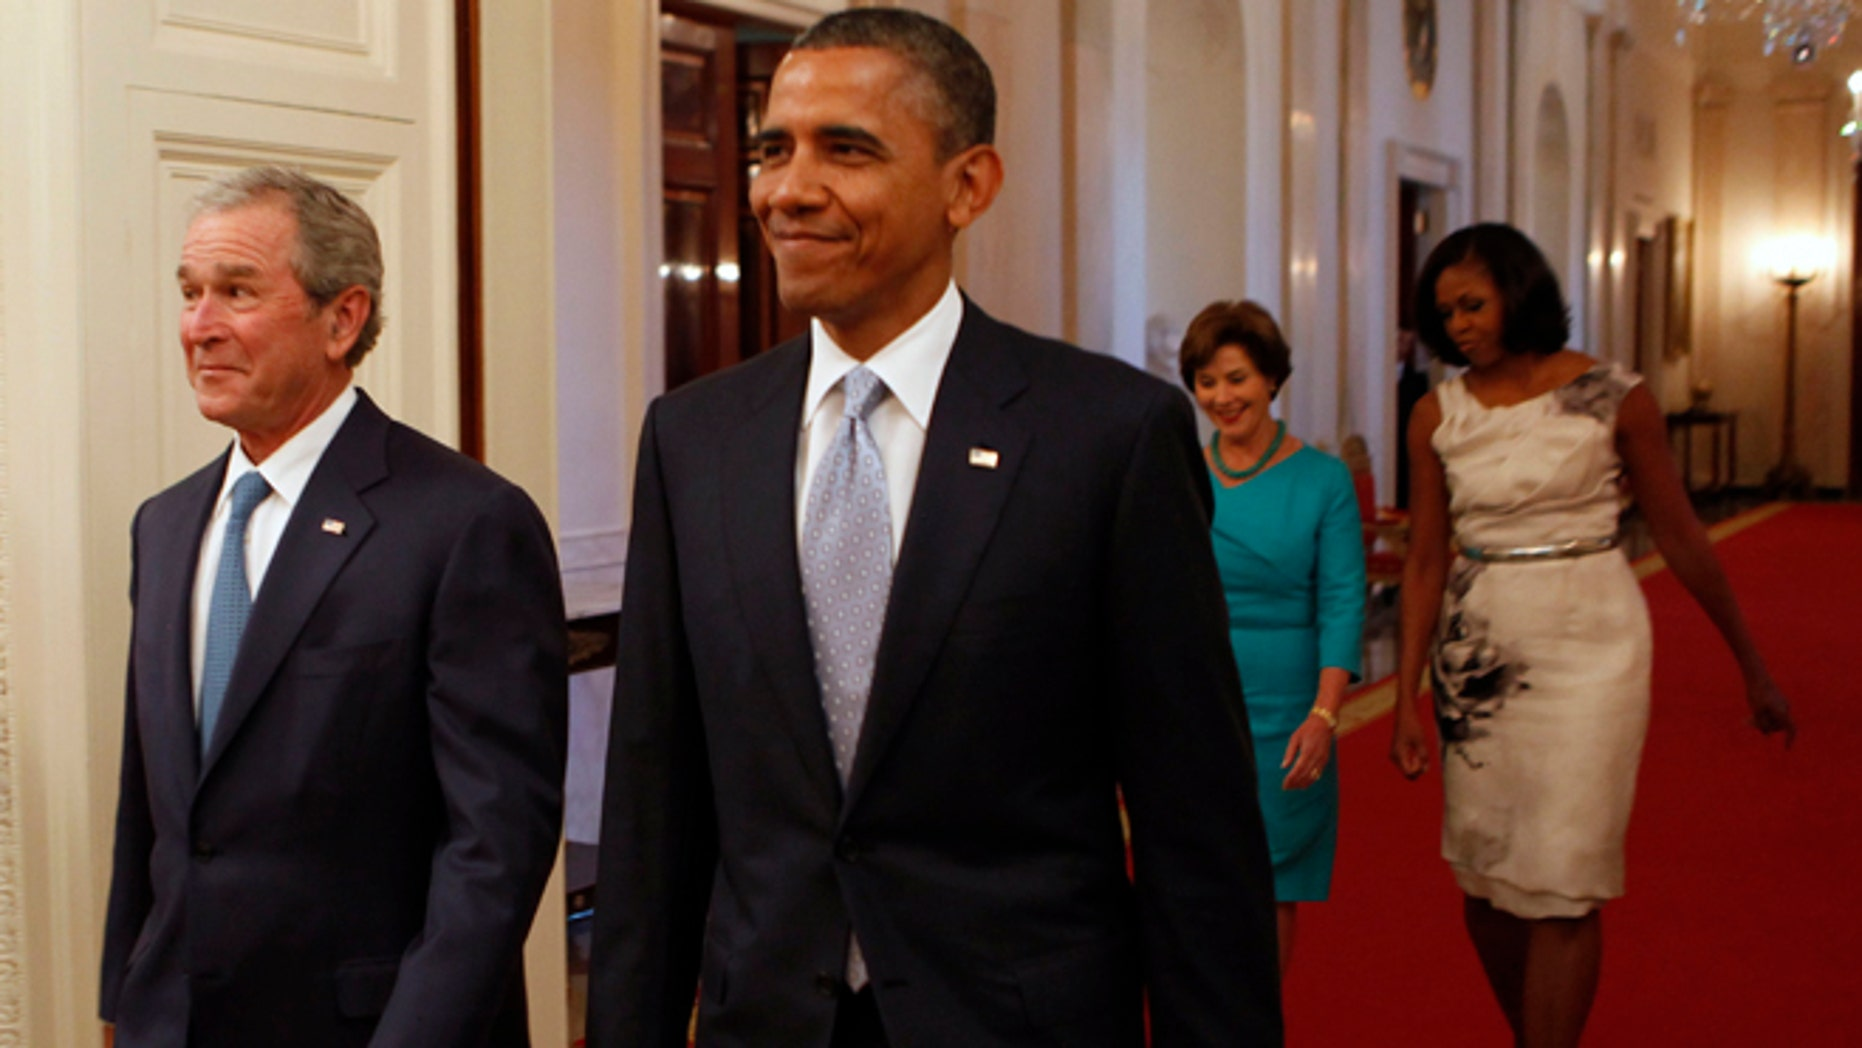 May 31, 2013: Former U.S. President George W. Bush (L) walks next to U.S. President Barack Obama (2nd L) while former first lady Laura Bush (2nd R) walks next to first lady Michelle Obama before the unveiling of the Bushs' official White House portraits in the East Room of the White House in Washington